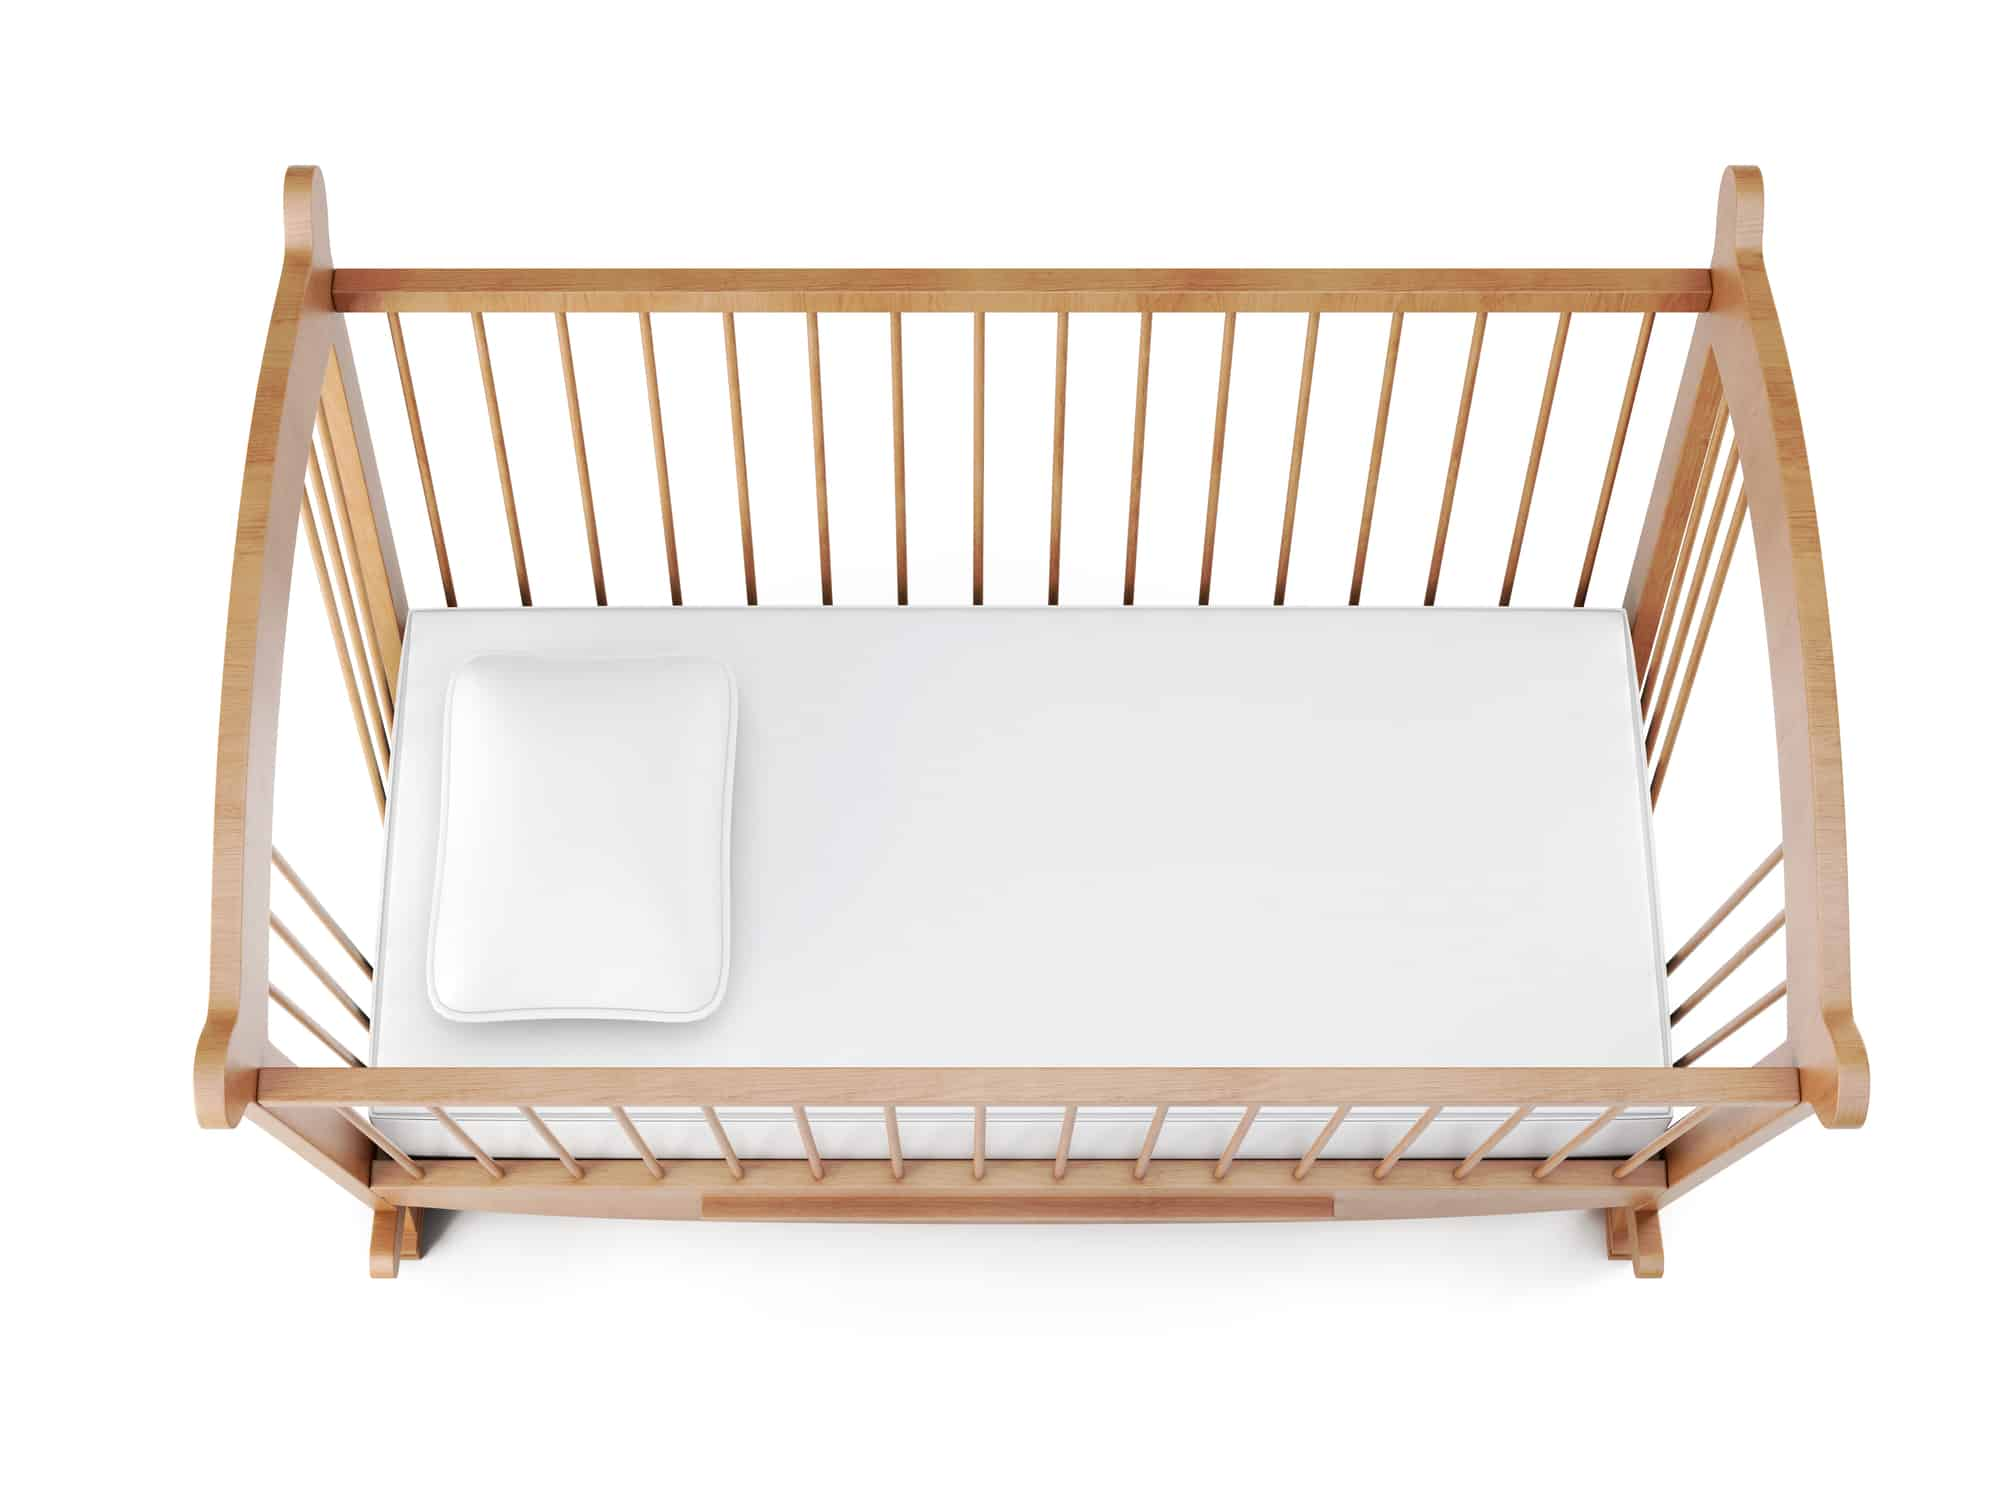 Wooden crib isolated on white background